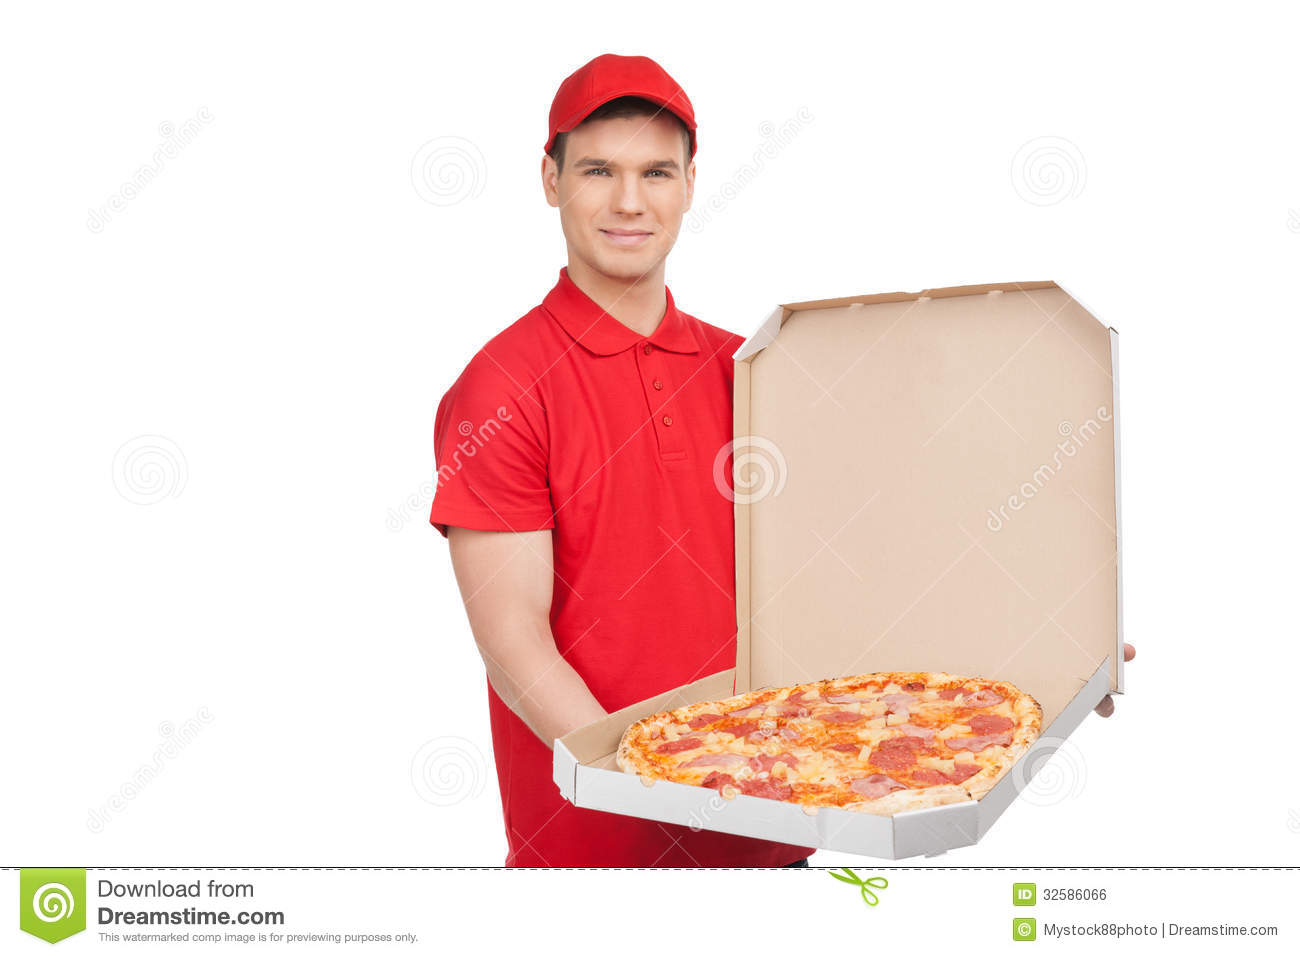 Our best pizza for you young cheerful pizza man holding an open royalty free stock image